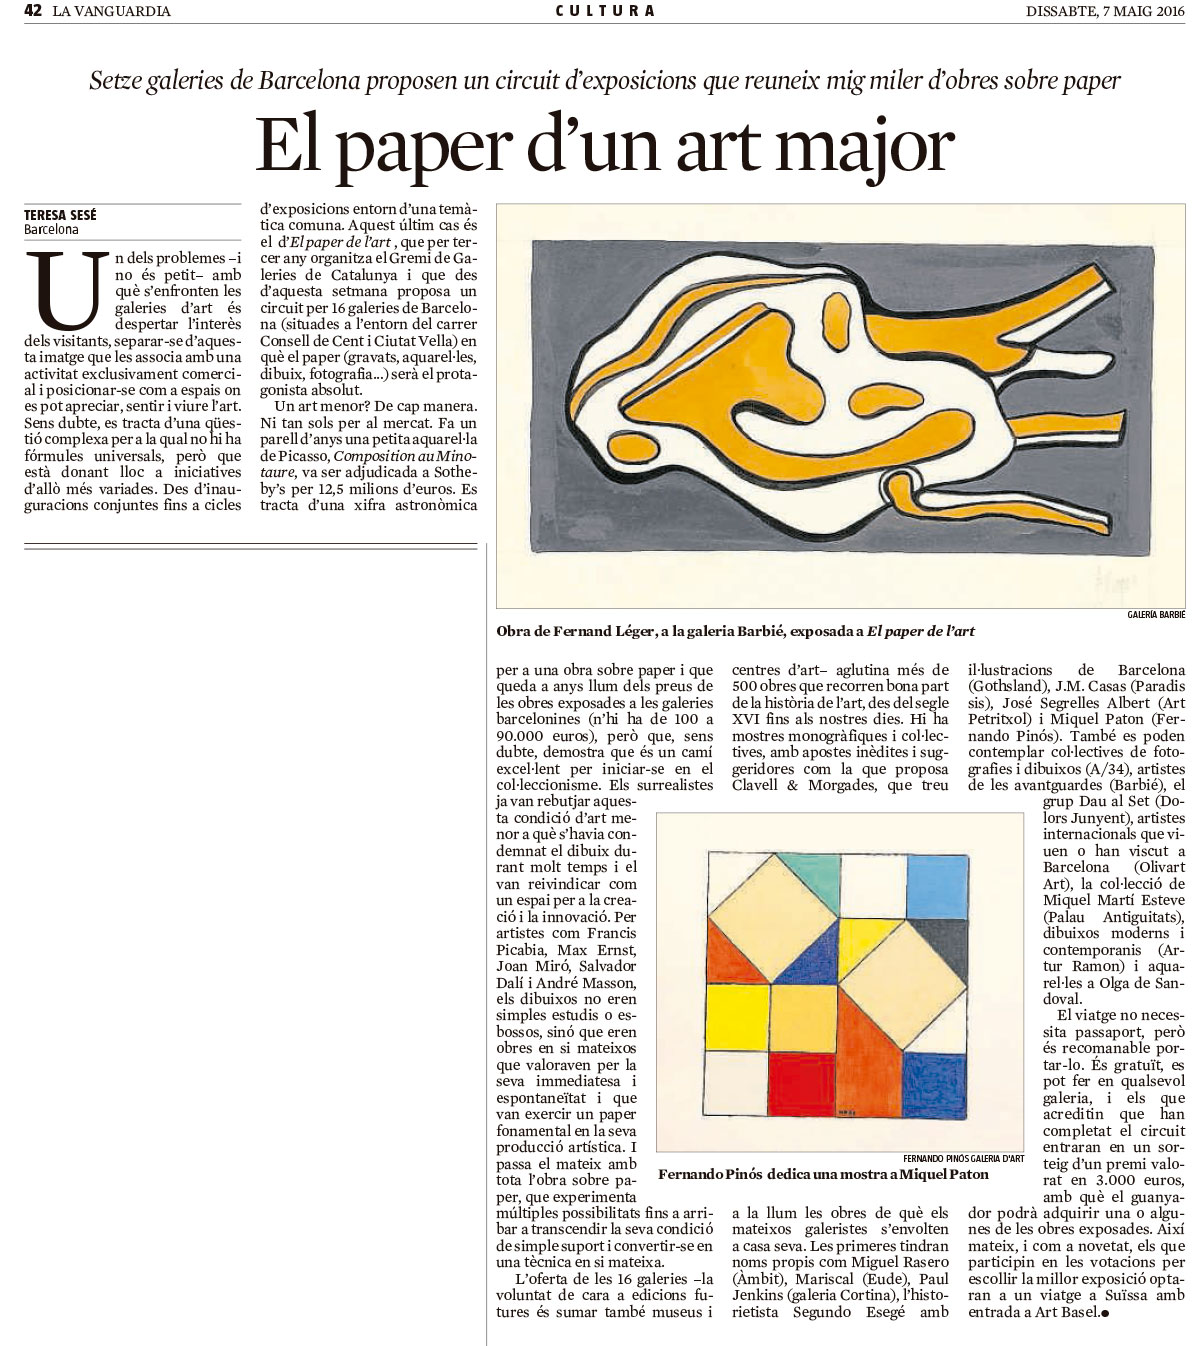 El paper d'un art major